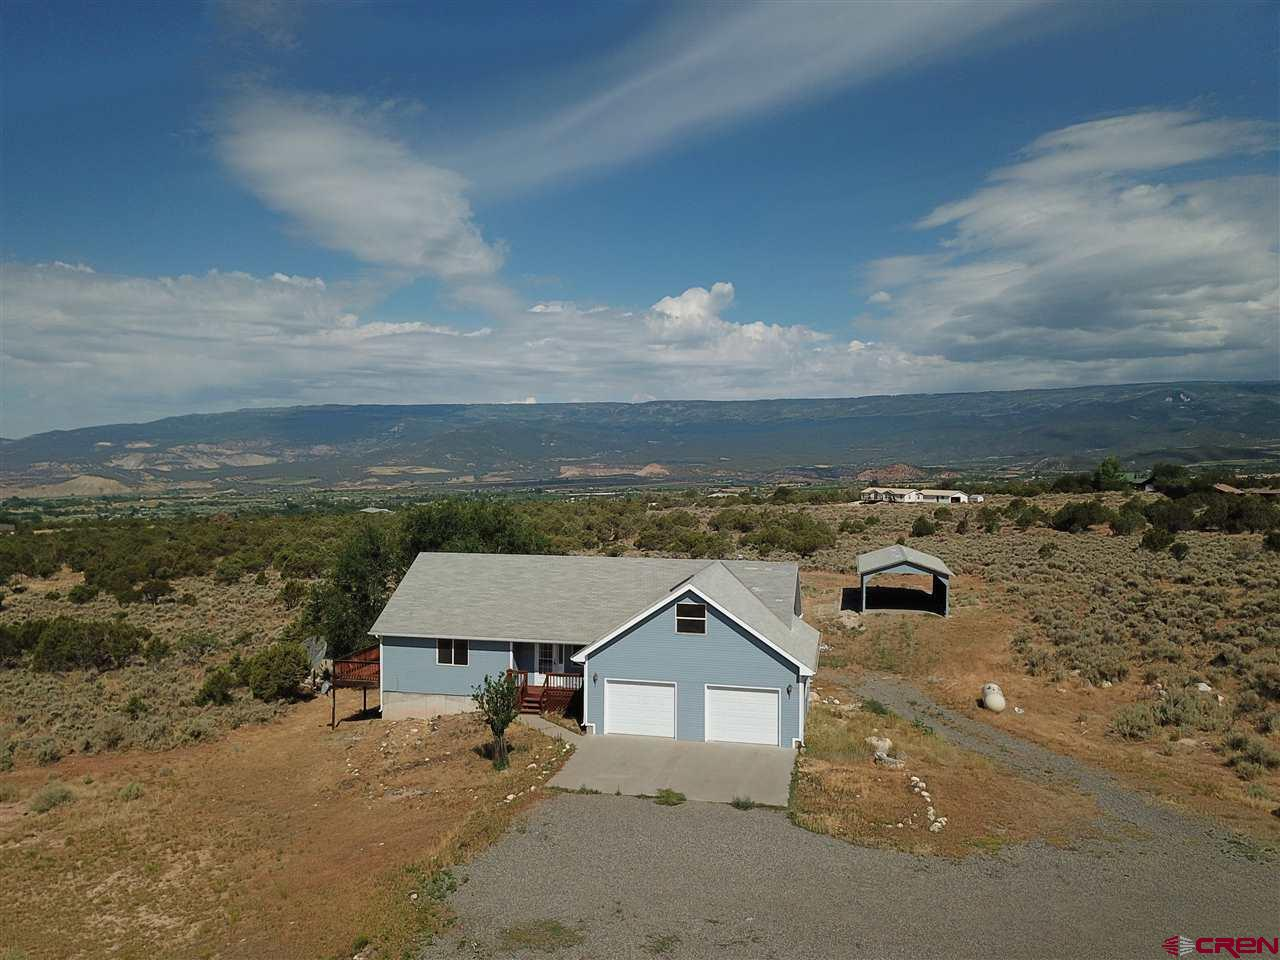 Fantastic Grand Mesa views from Cedar Mesa! Lots of room inside and outside; and ready to move i! Fresh exterior paint! 9.72 acres, no HOA. Two car attached garage plus RV/Boat shelter. This home features an attractive open floor plan with 1386 sq. ft on the main level, including the master bedroom. Upstairs office or hobby room offers 360 sq ft and the finished walk out basement completes the living space with a huge family room, bedroom, bathroom, storage and more. Clean, comfortable and ready to go! This property could possibly be subdivided. Come take a look!